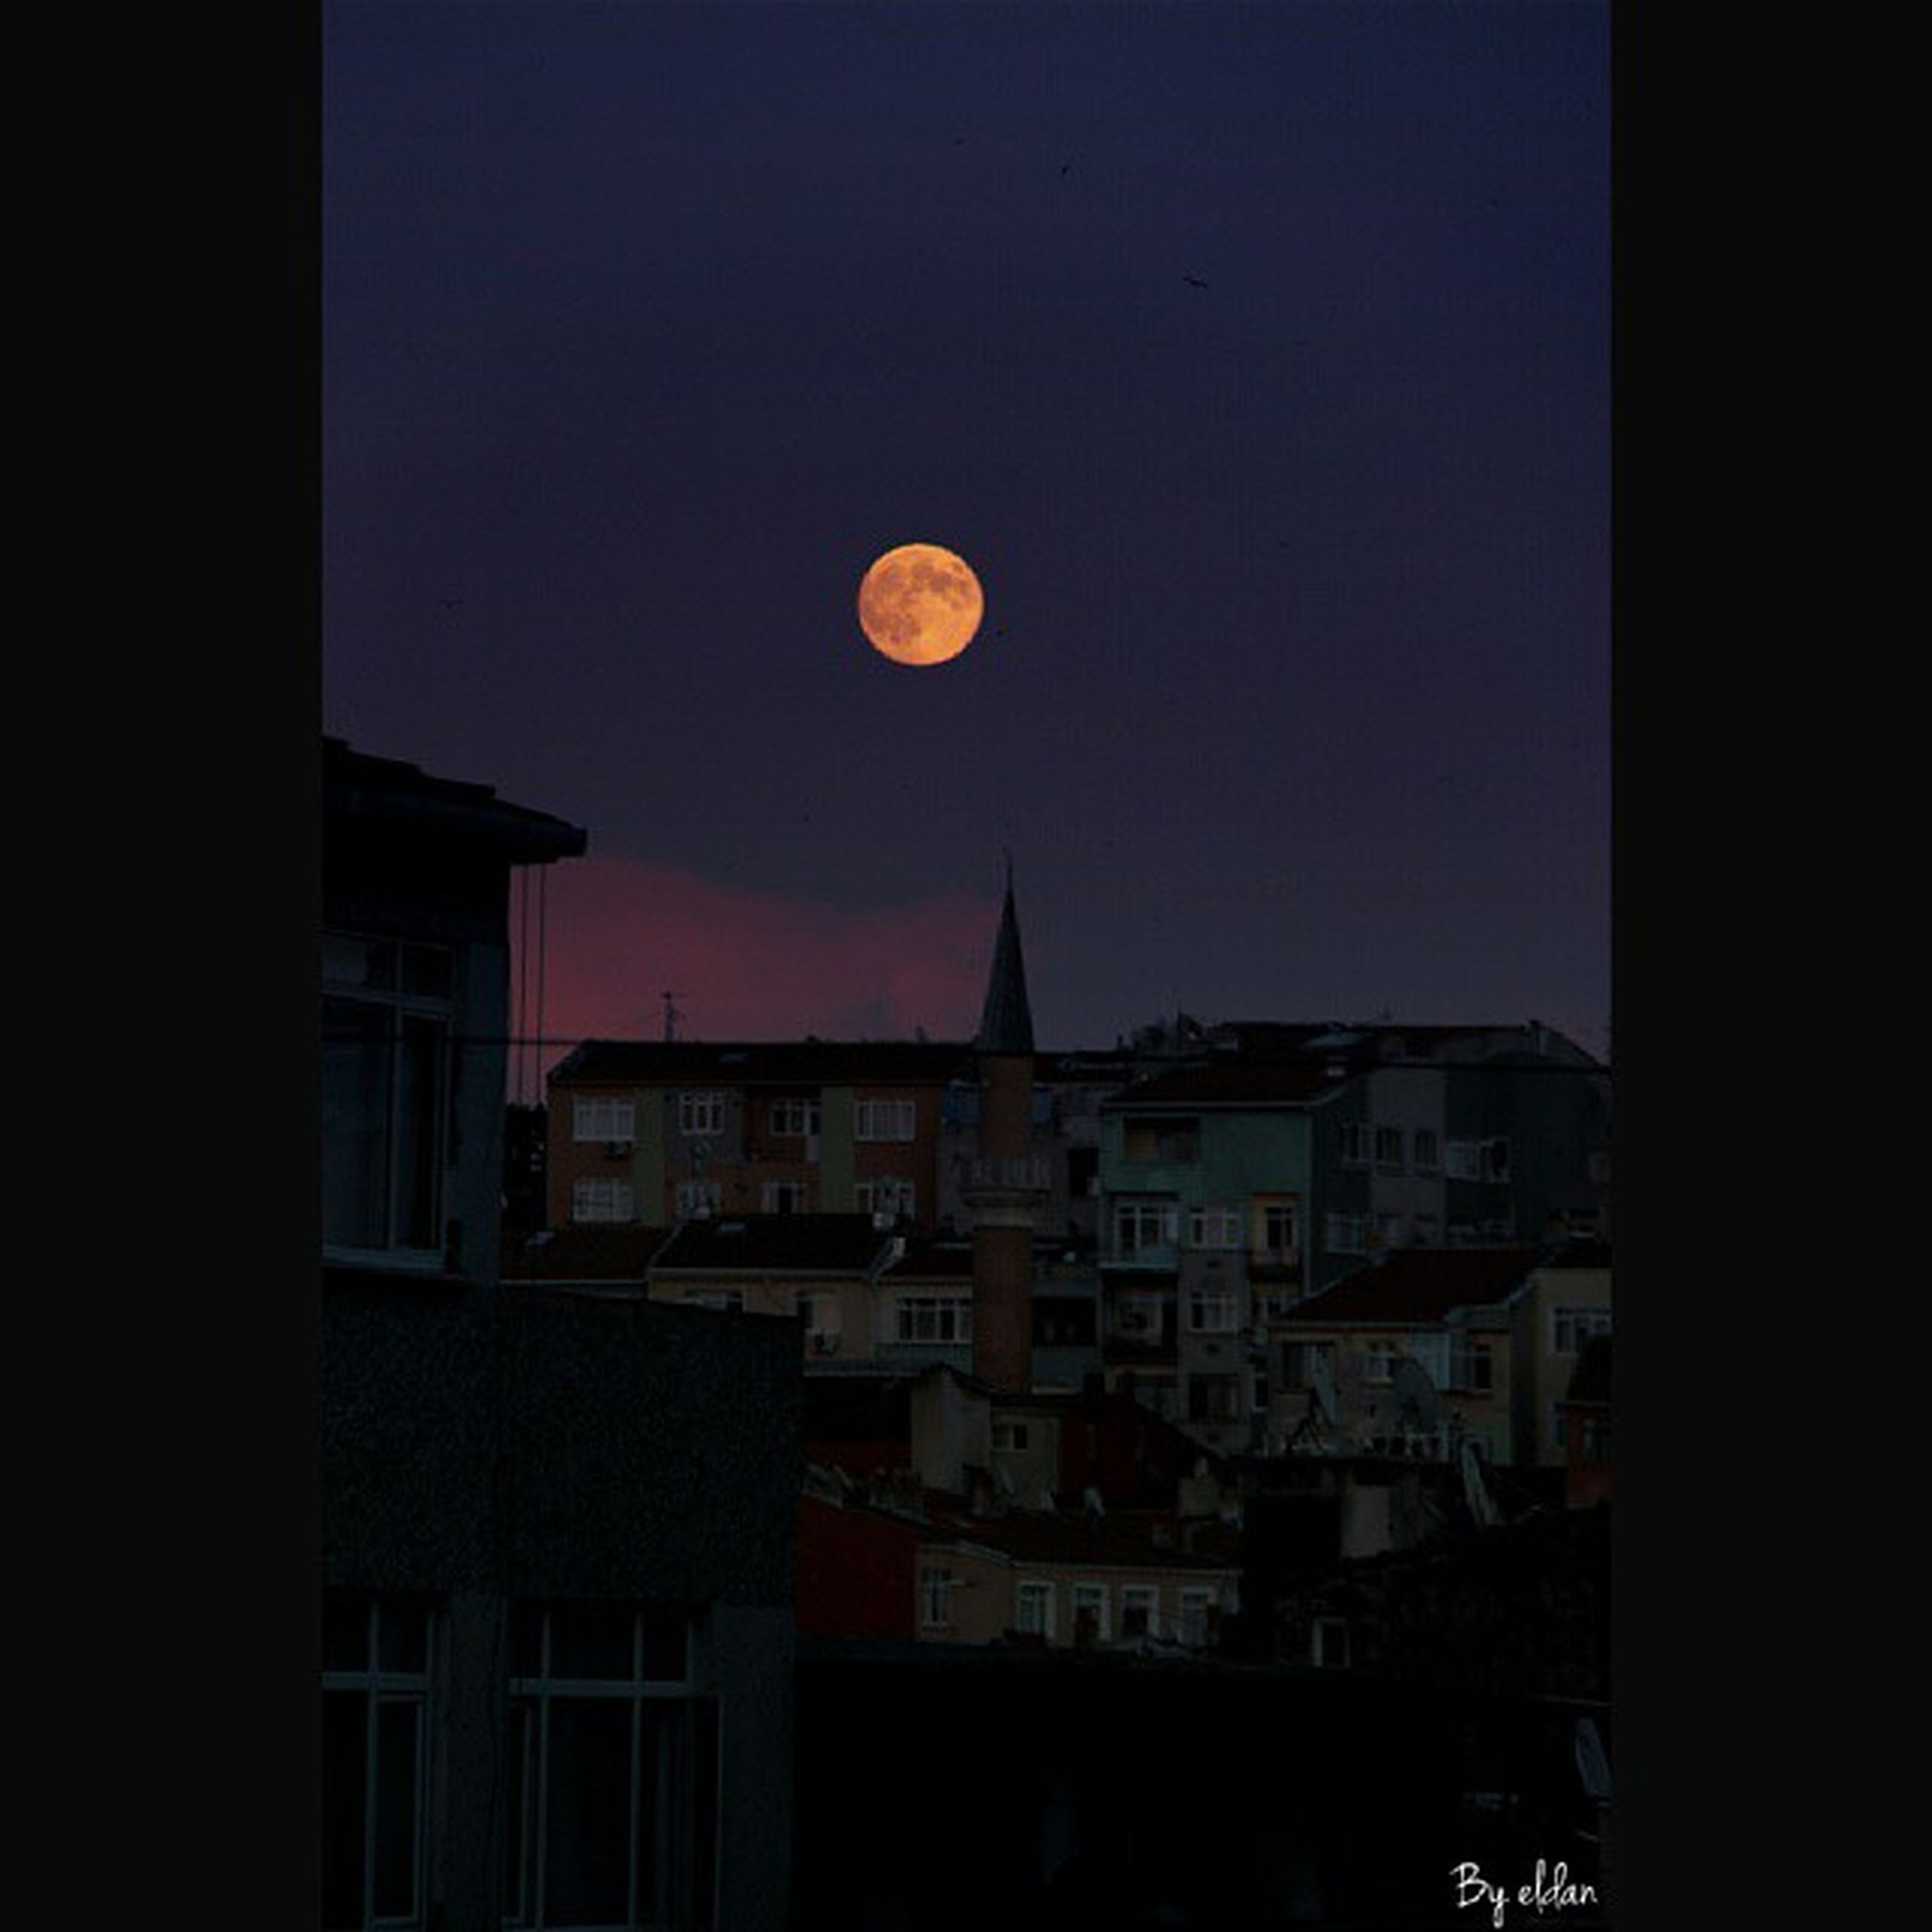 architecture, building exterior, built structure, moon, night, sky, copy space, illuminated, residential structure, city, residential building, low angle view, building, dark, clear sky, house, dusk, outdoors, no people, window